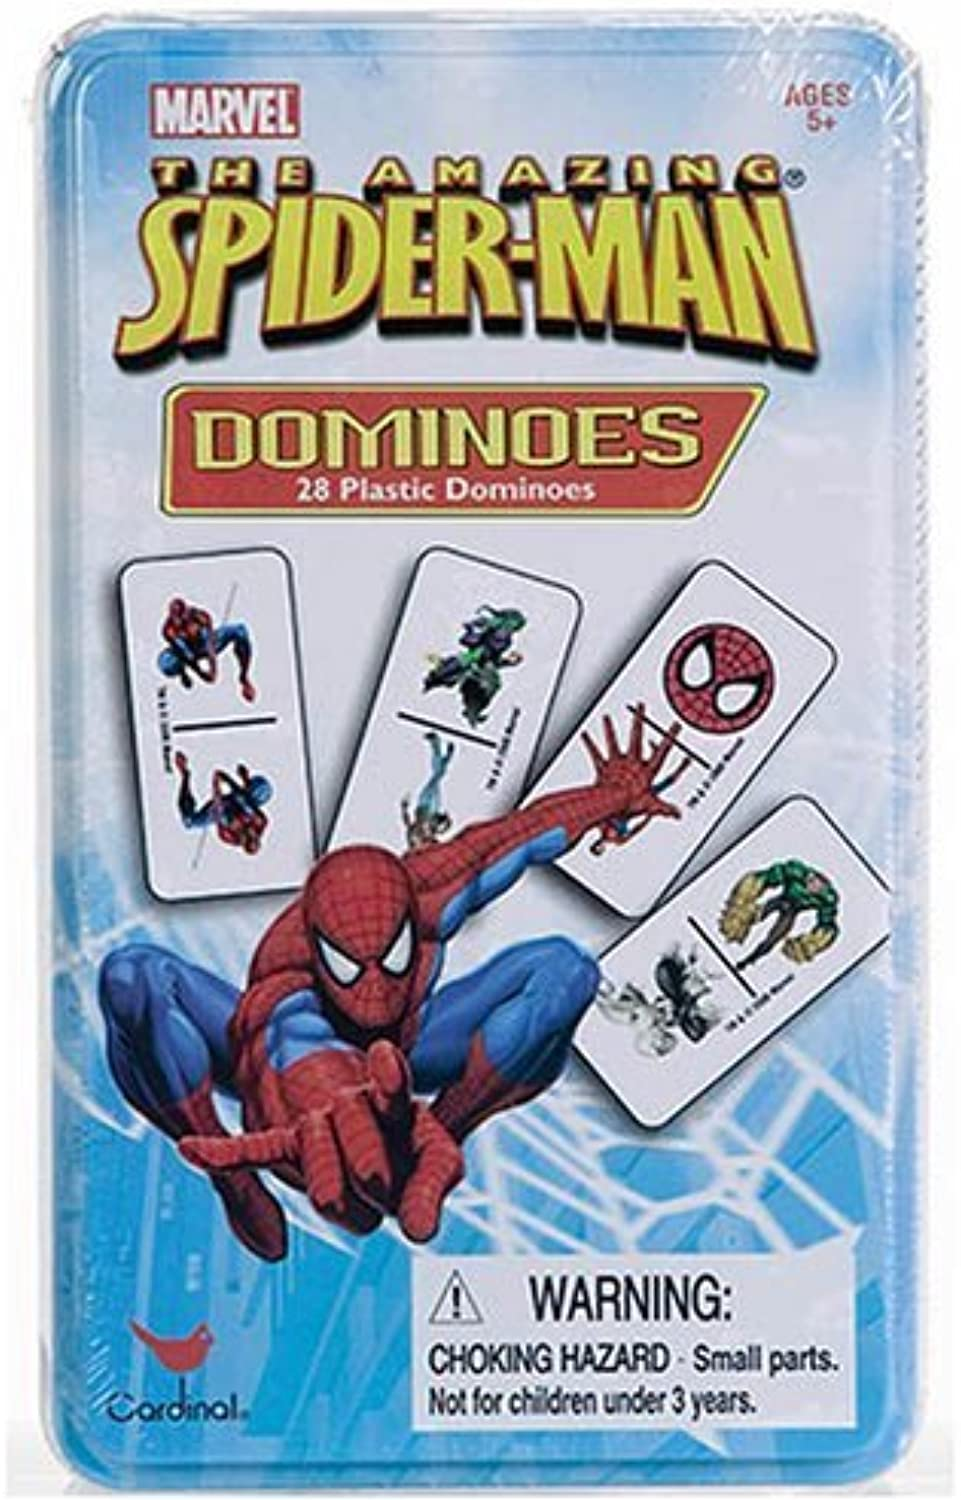 ventas directas de fábrica Marvel THE AMAZING AMAZING AMAZING SPIDERMAN DOMINOES Spider-Man  descuento online